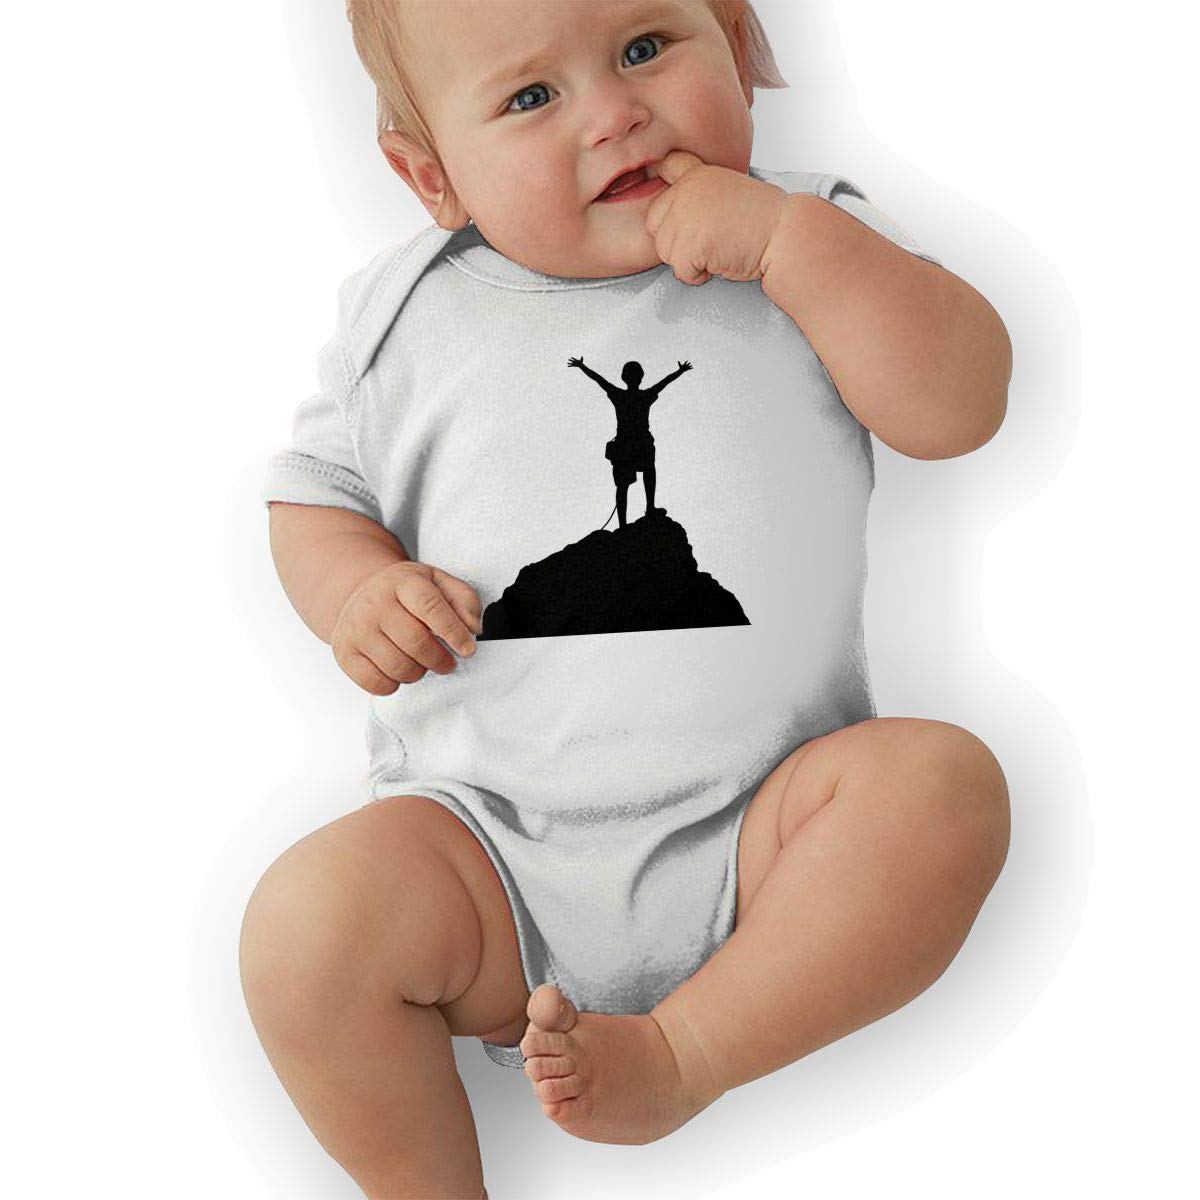 Infant Baby Boys Bodysuit Short-Sleeve Onesie Rock Climbing Print Outfit Summer Pajamas